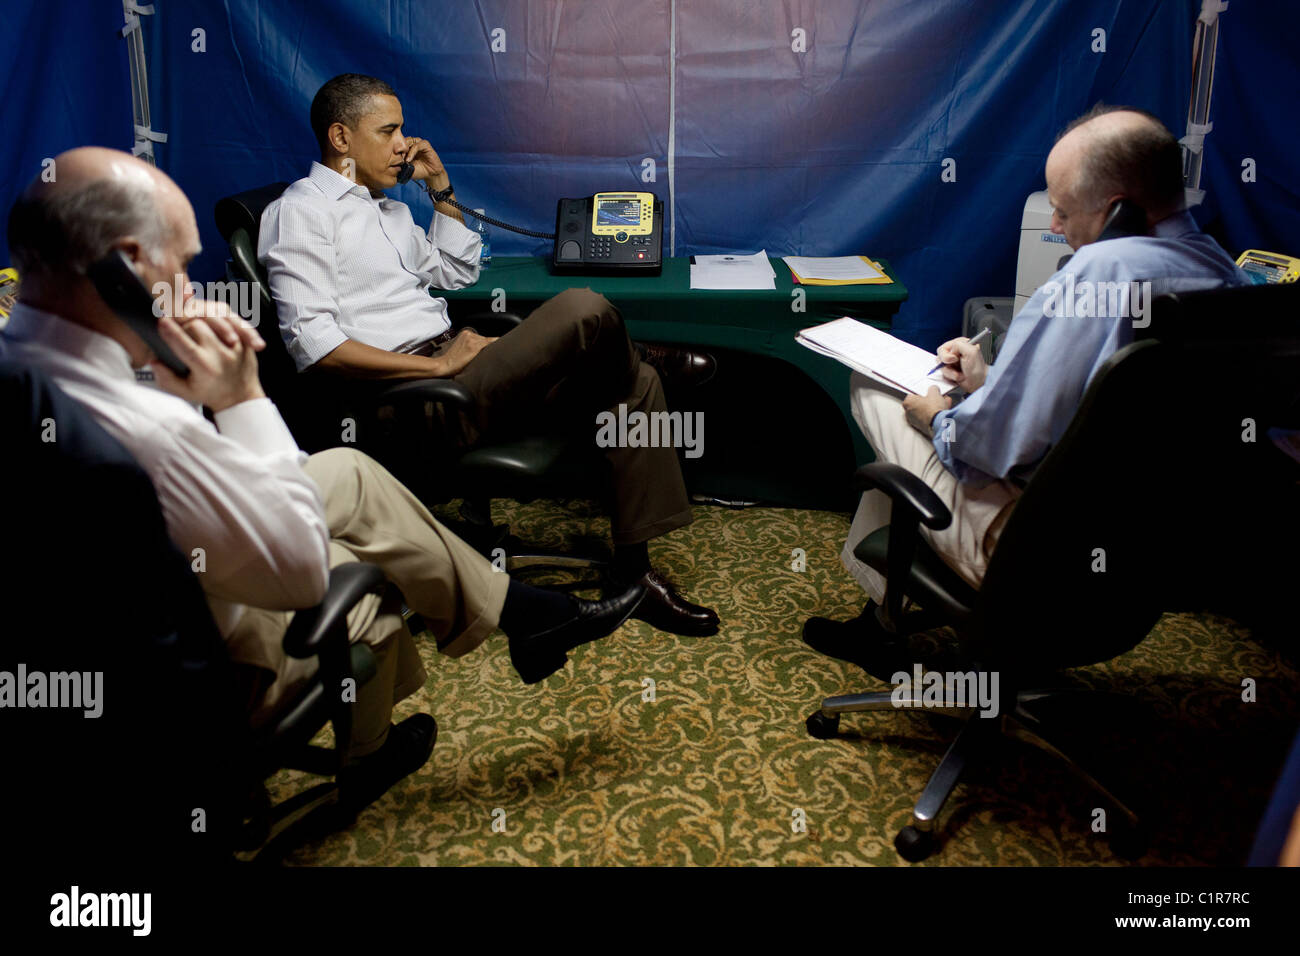 President Barack Obama is briefed on the situation in Libya during a secure conference call. - Stock Image